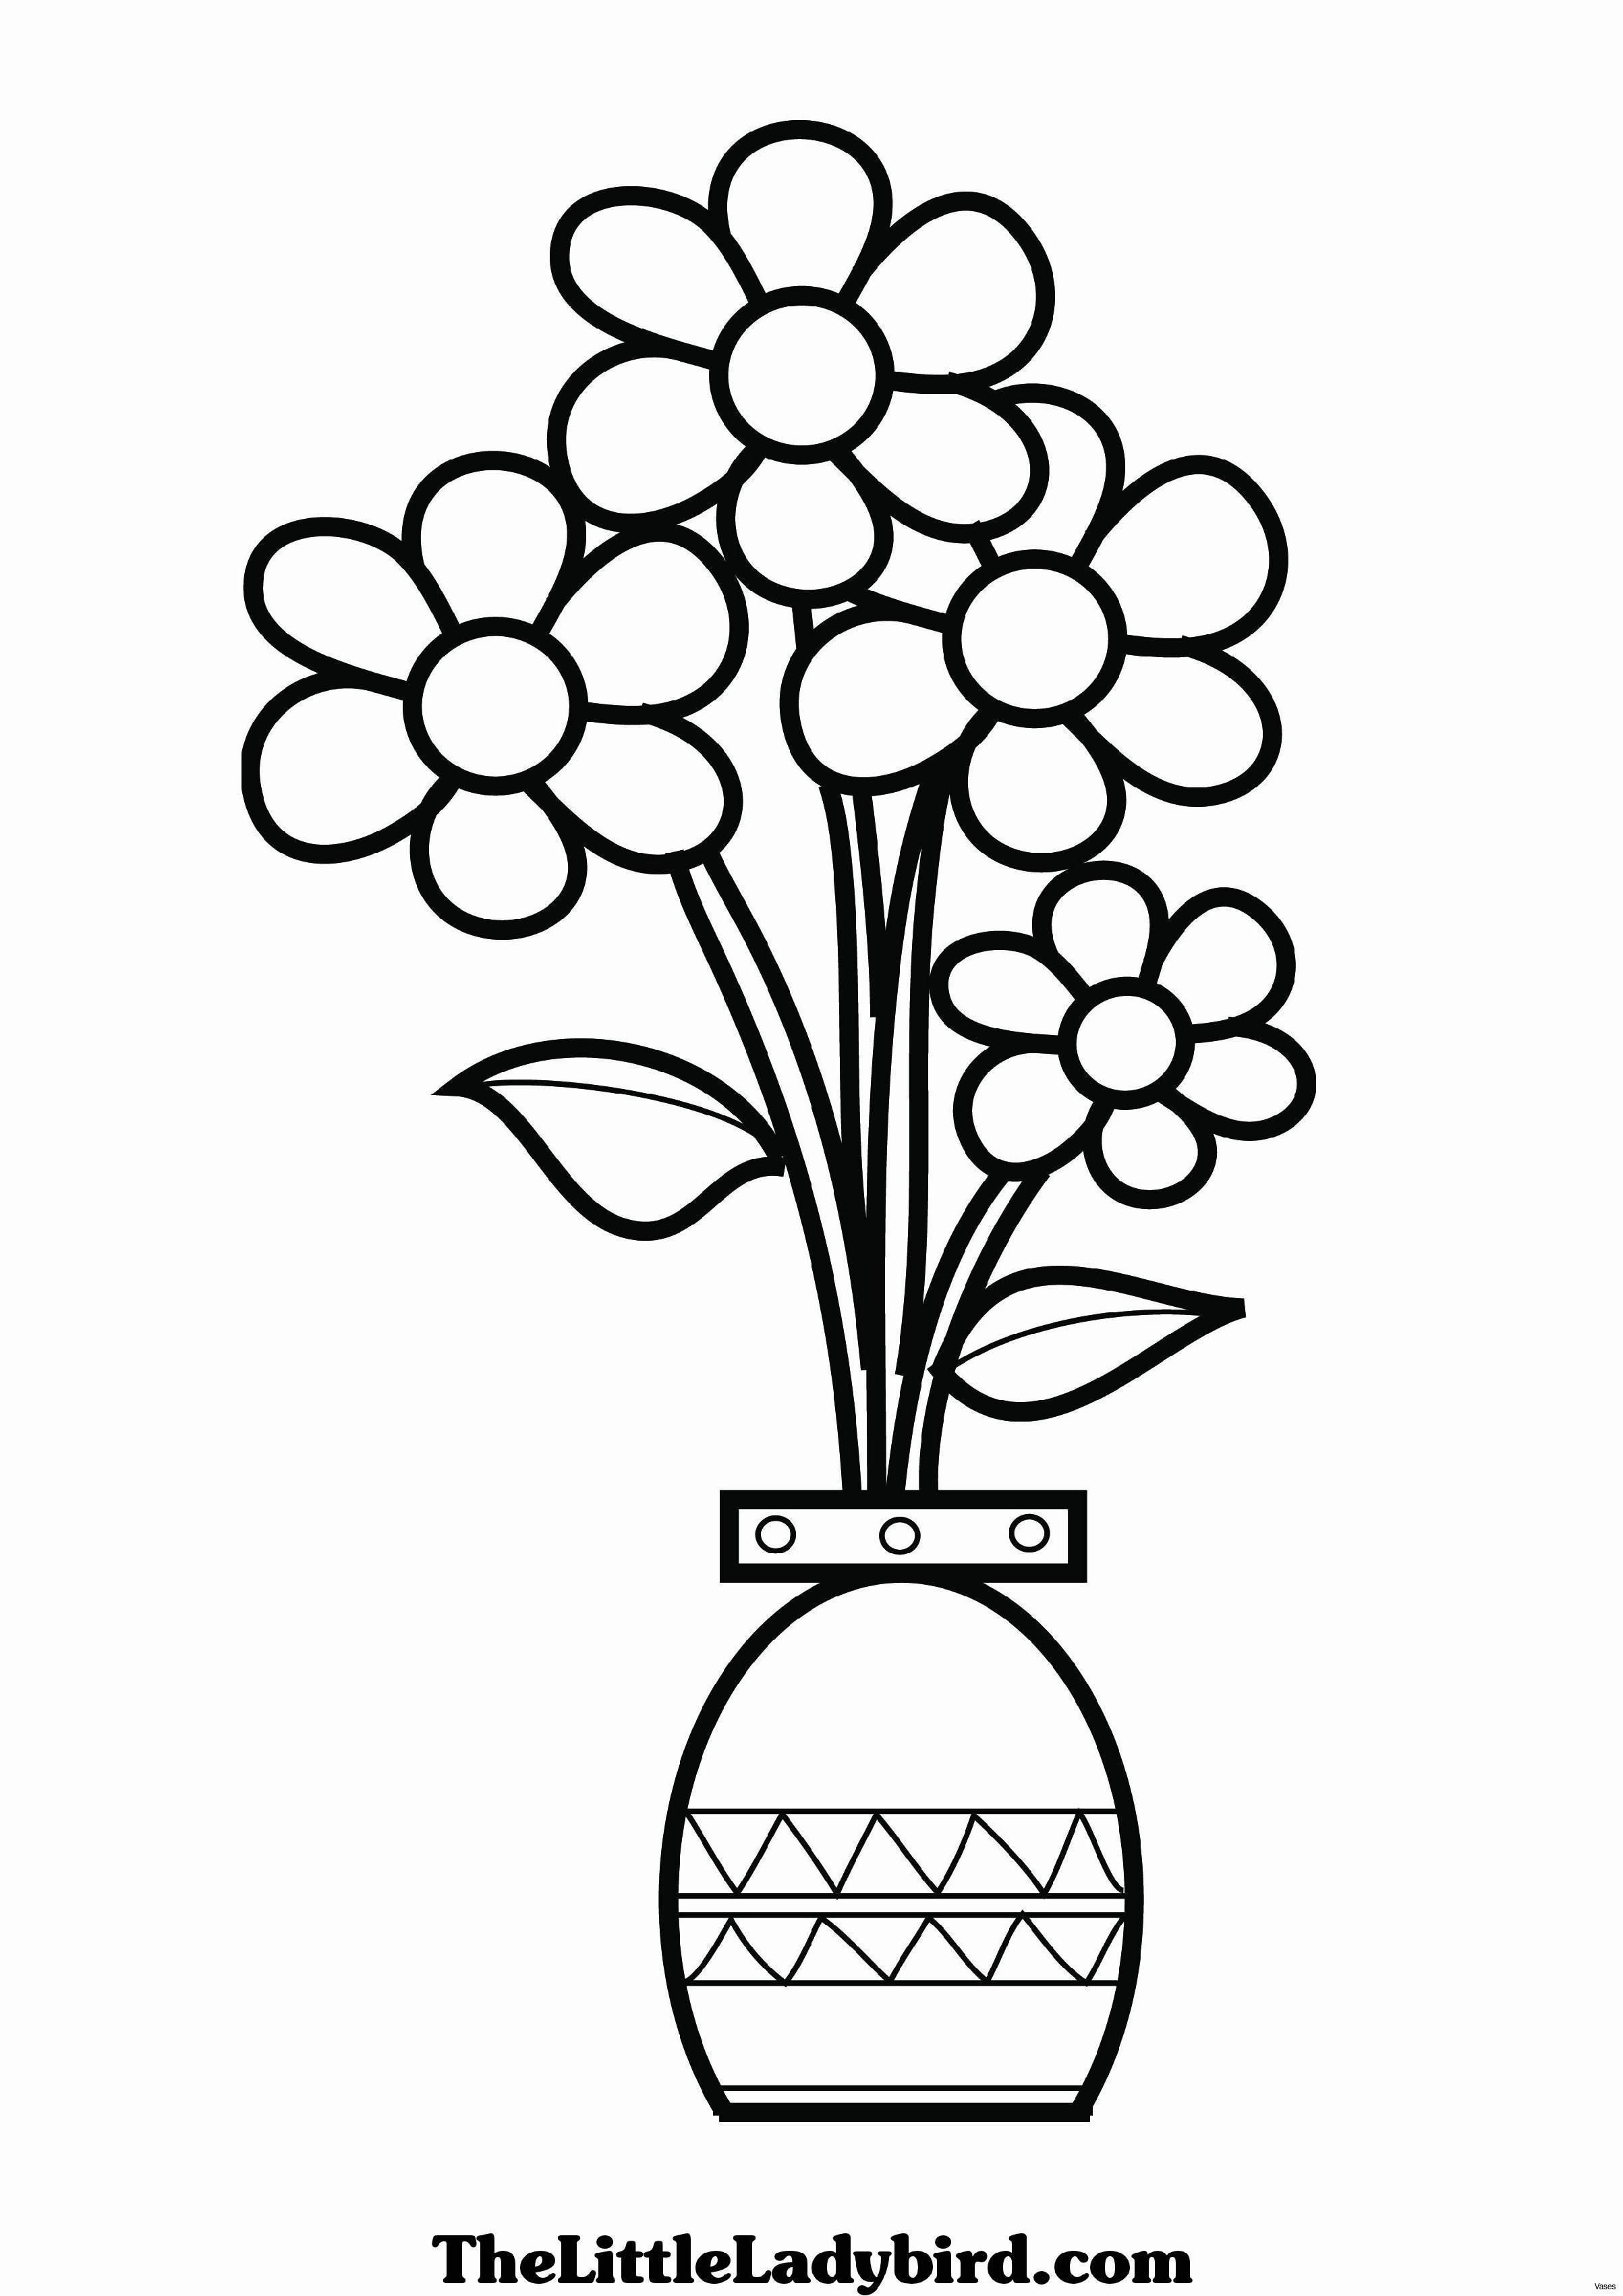 colouring pages flowers in a vase vase coloring pages download and print vase coloring pages colouring a vase pages flowers in